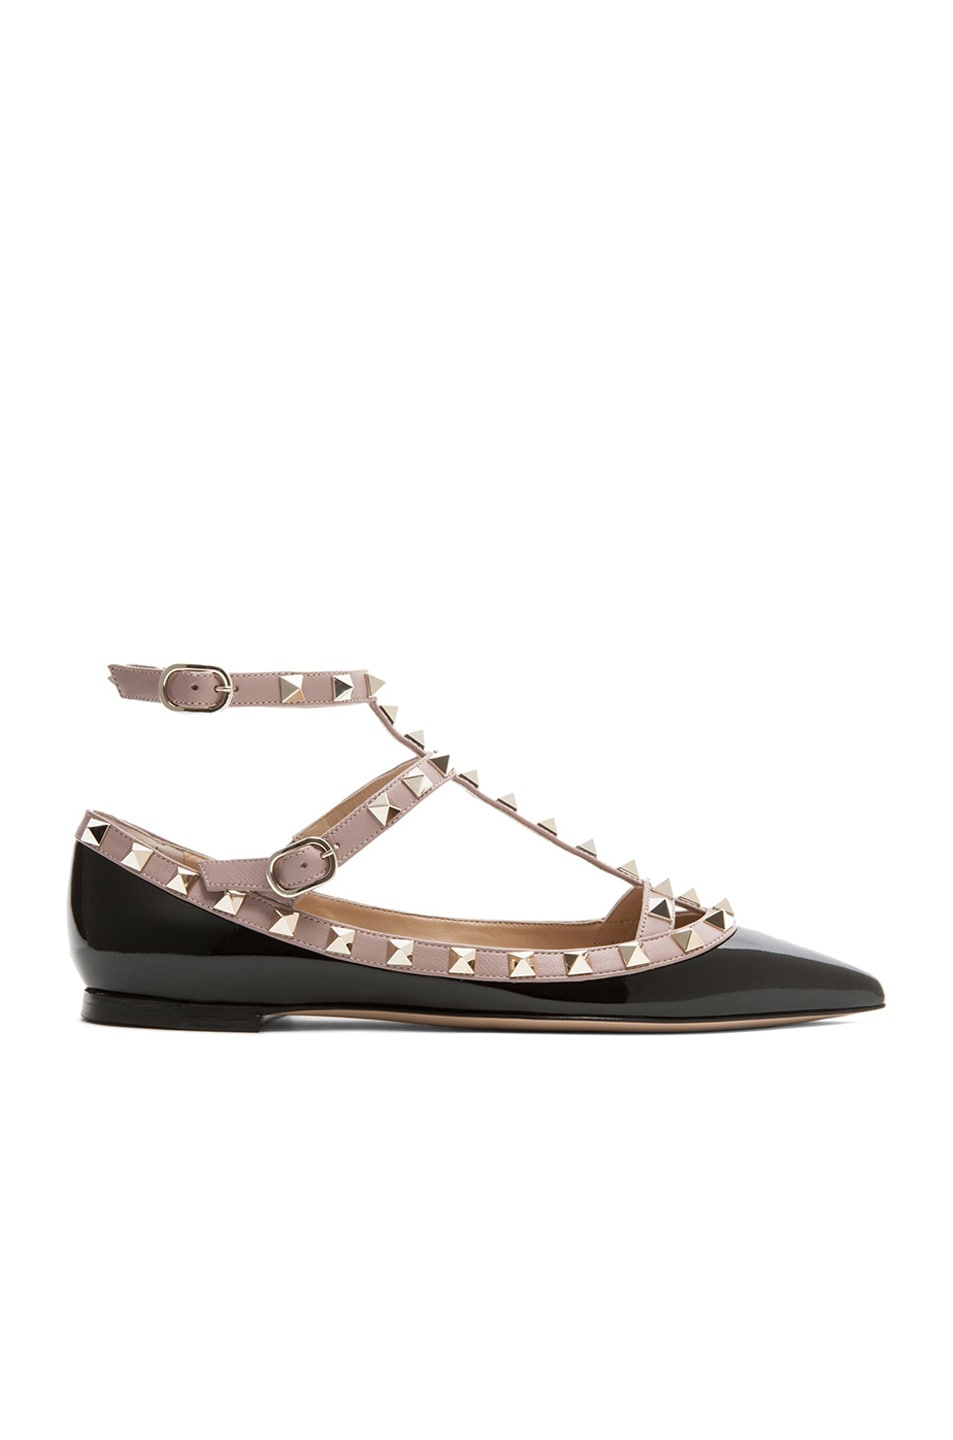 Image 1 of Valentino Rockstud Patent Cage Flats in Black & Nude